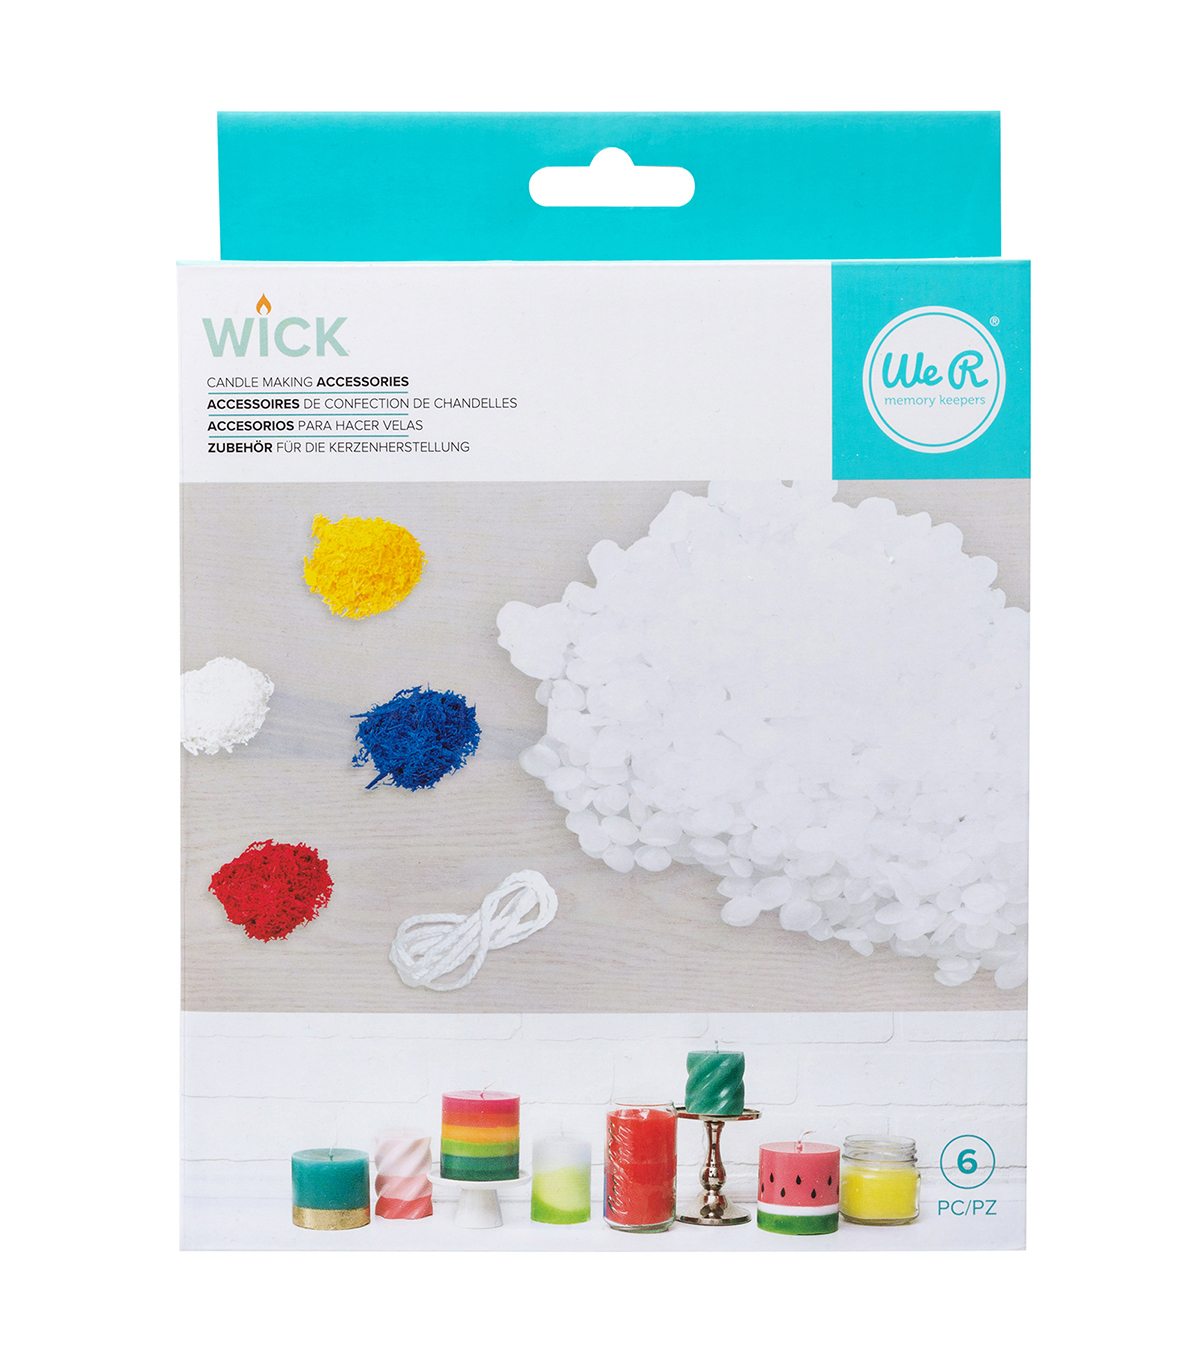 We R Memory Keeper Wick Candle Wax & Wick Bundle Kit